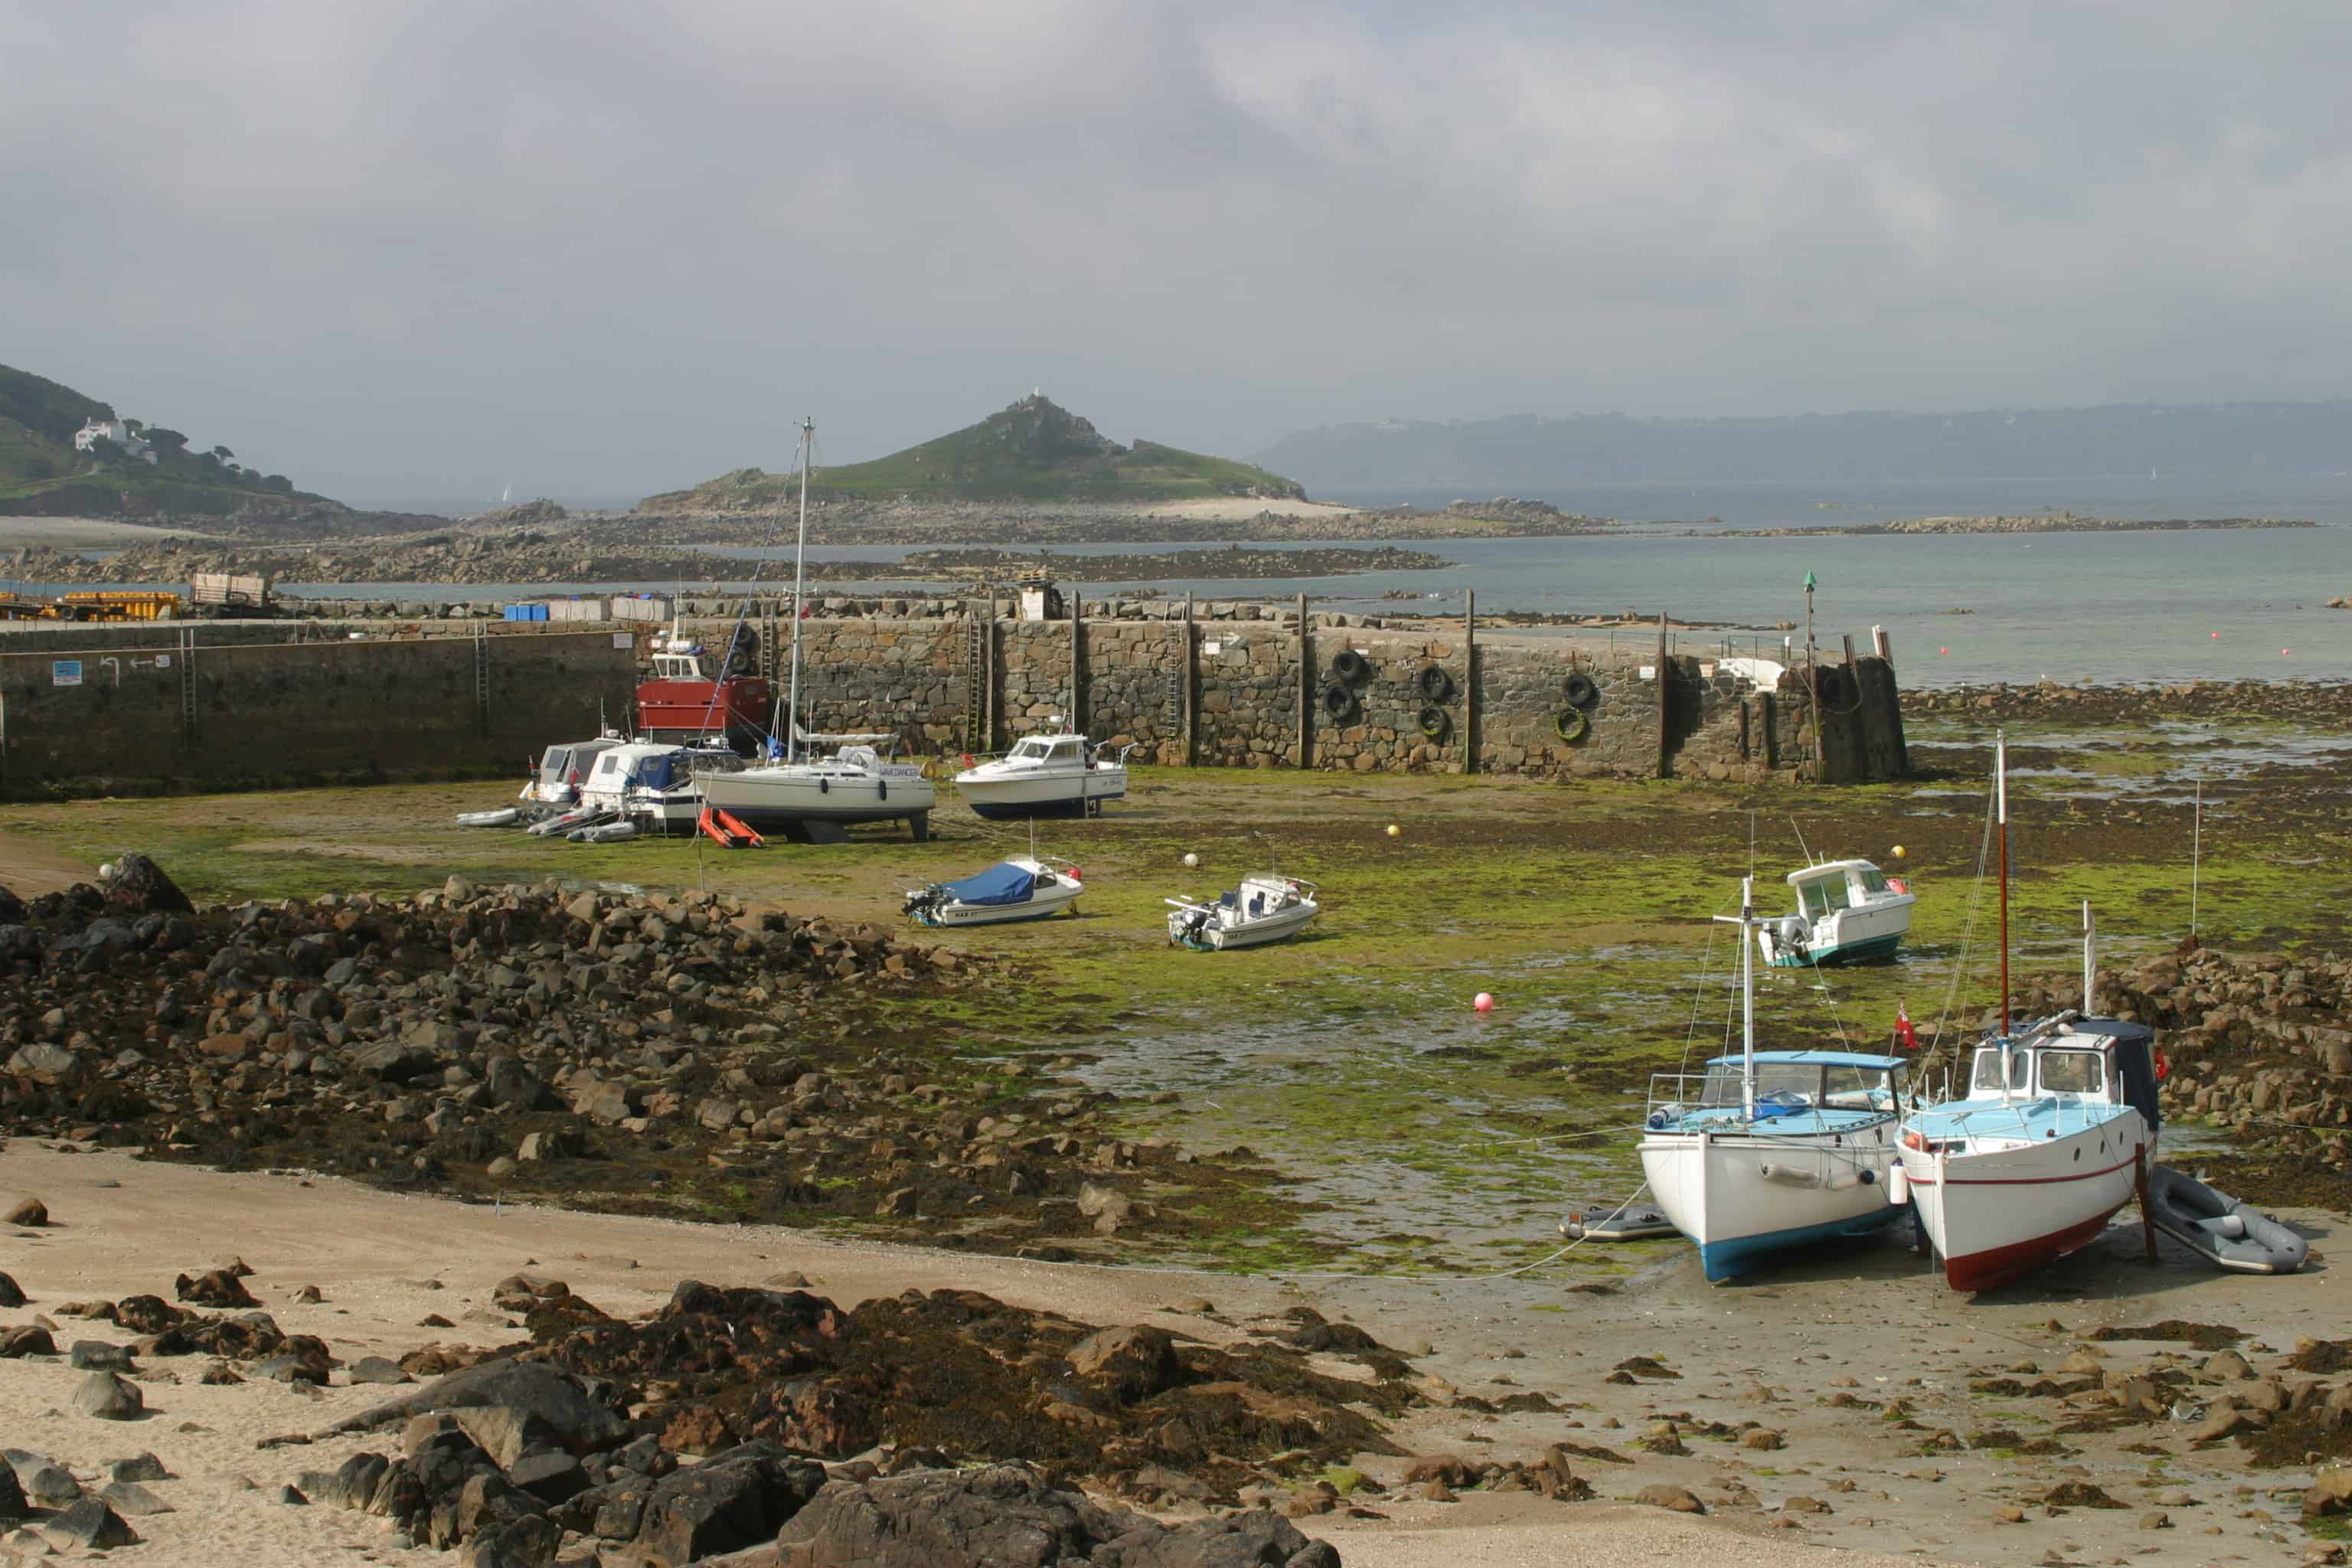 One of the harbours, with boats grounded for much of the tidal cycle, illustrates the huge tidal range of the Channel Islands. Copyright: Dr Mike Pienkowski